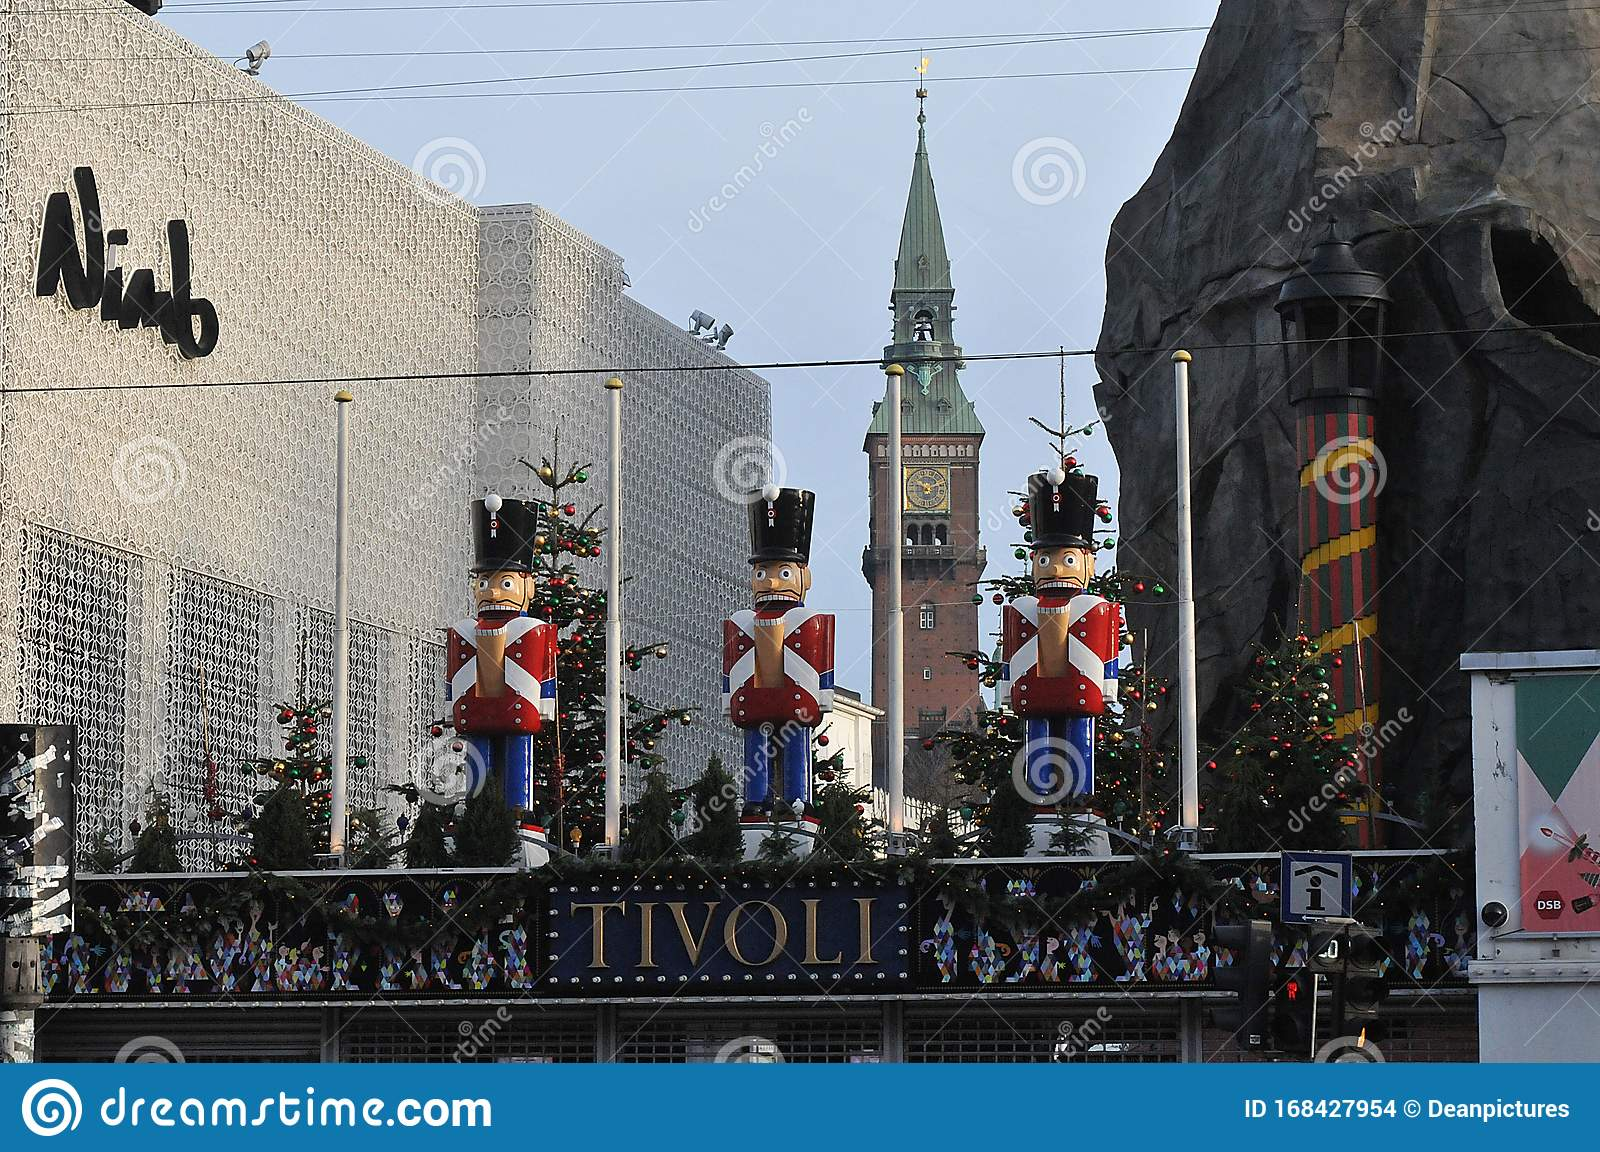 When Does Christmas Season End 2020 TIVOLI GARDEN CHRISTMAS SEASON END TODAY Editorial Stock Image